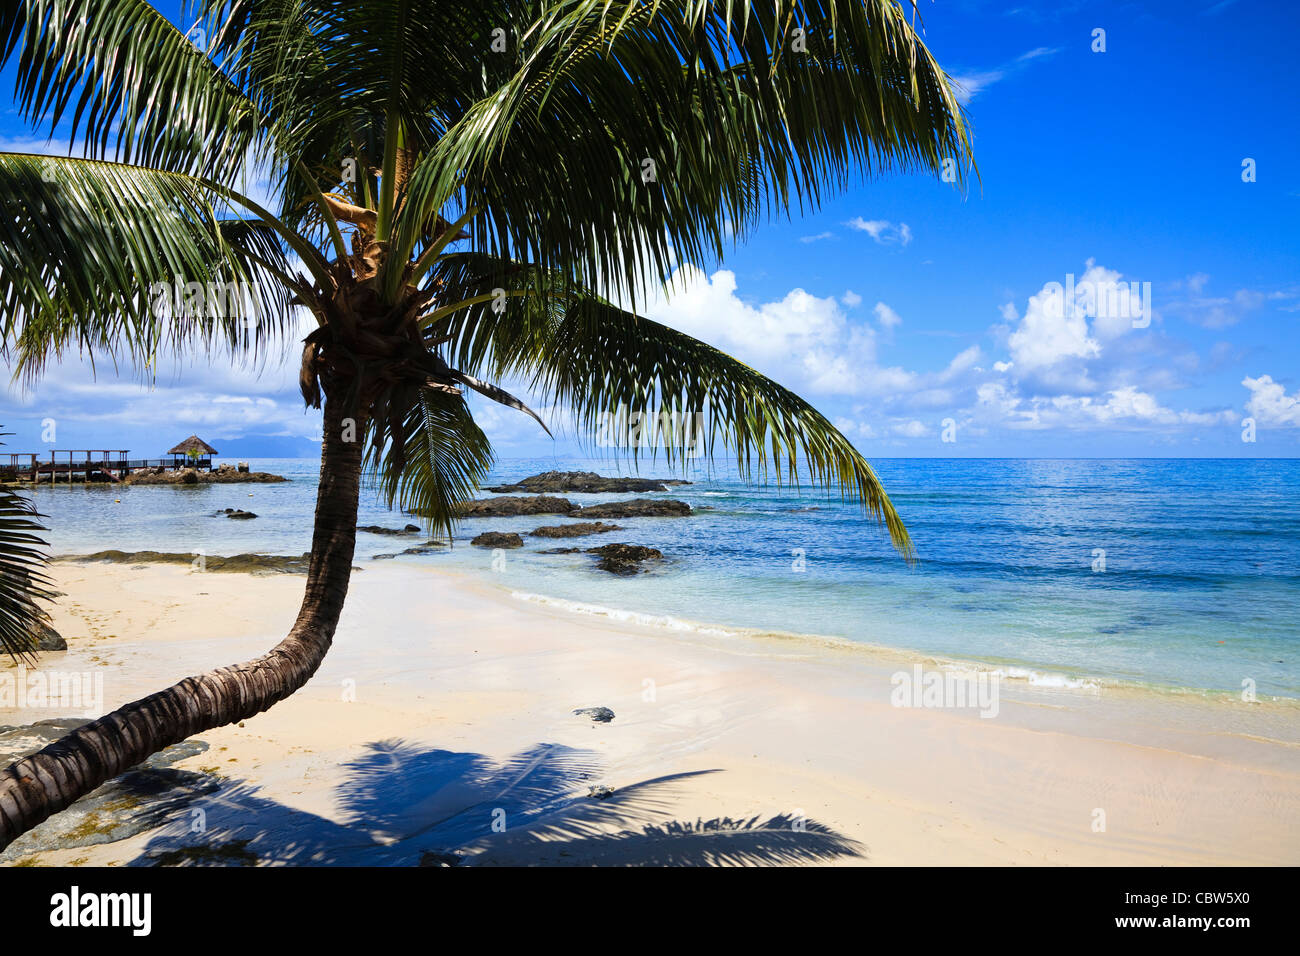 Beach with palm tree at Fisherman's Cove, Bel Ombre, Mahe Island, Seychelles - Stock Image